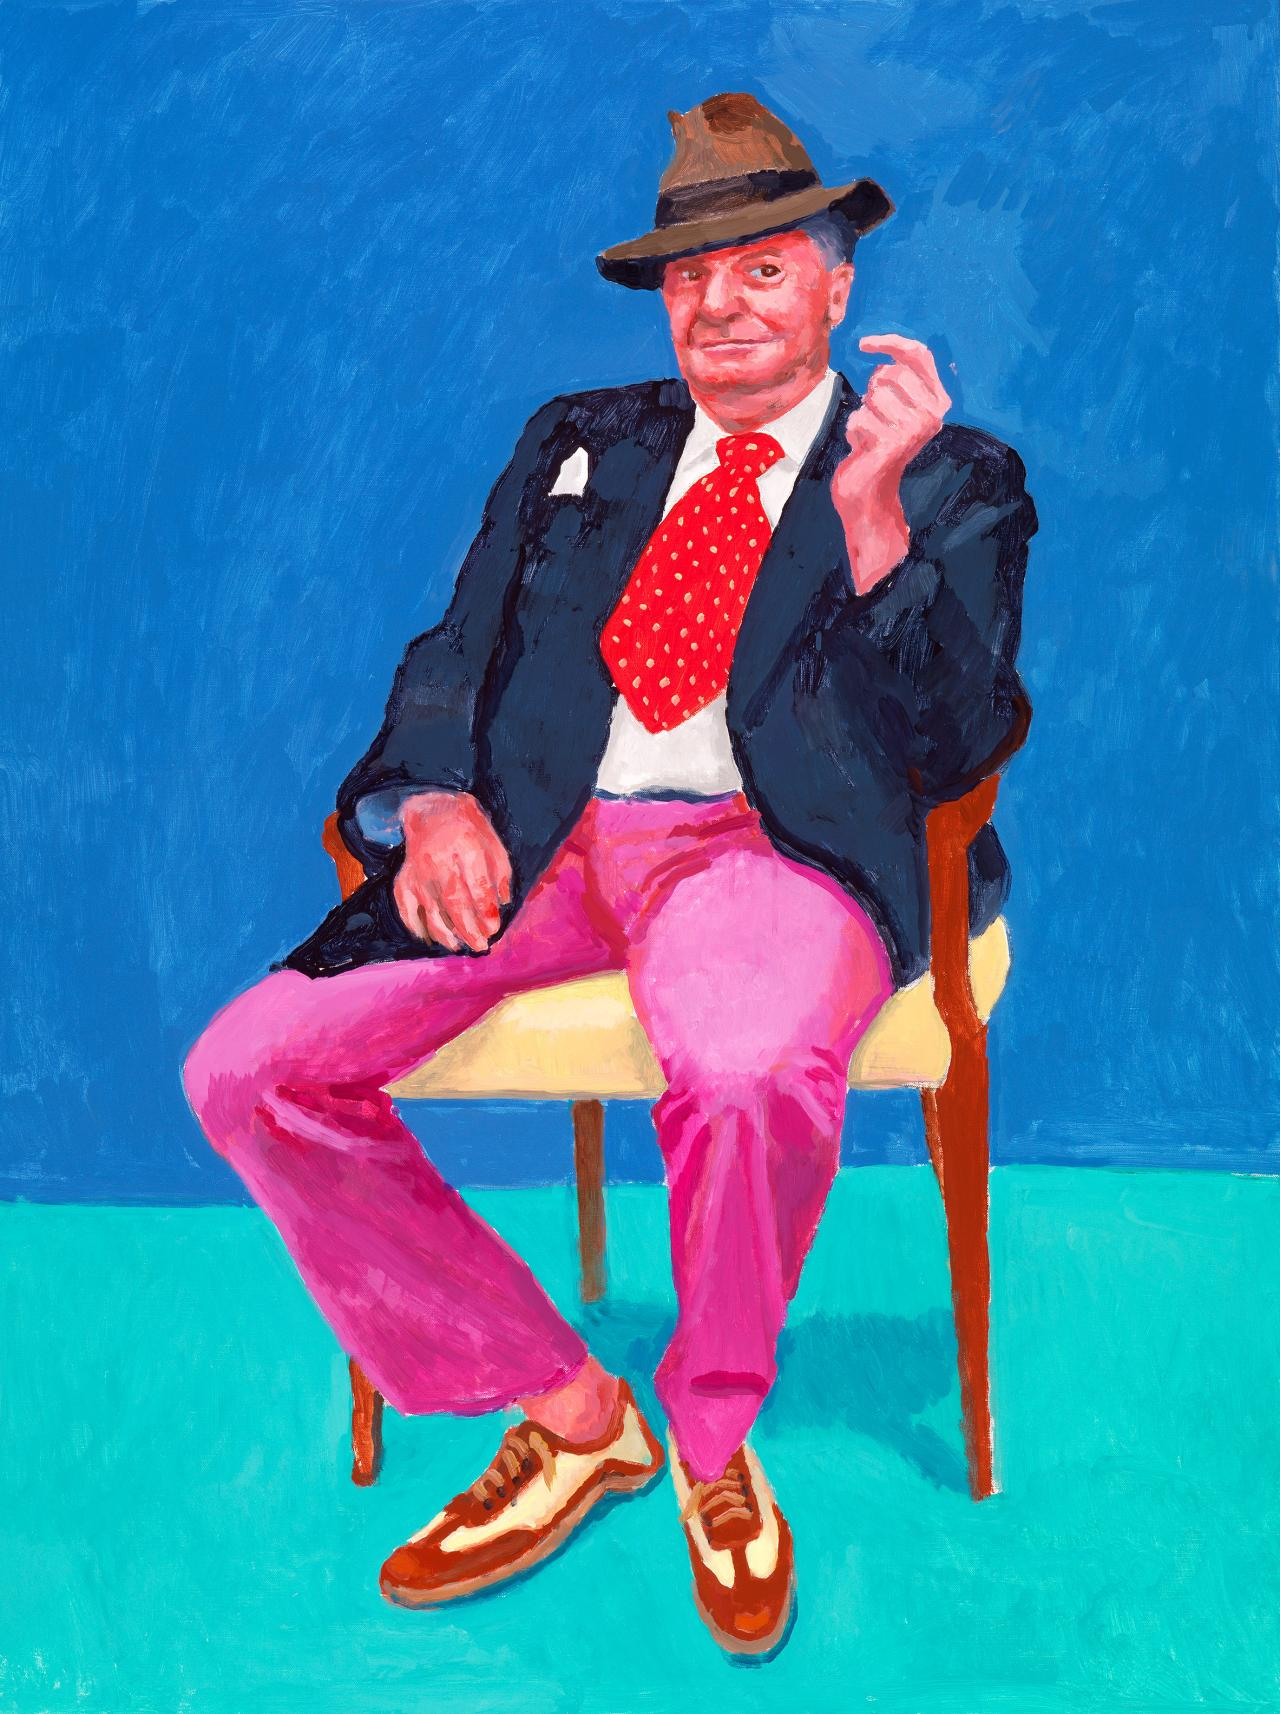 David Hockney<br/> English 1937&ndash;<br/> Barry Humphries, 26th, 27th, 28th March 2015<br/> acrylic on canvas<br/> 121.9 x 91.4 cm<br/> Collection of the artist<br/> &copy; David Hockney<br/> Photo Credit: Richard Schmidt